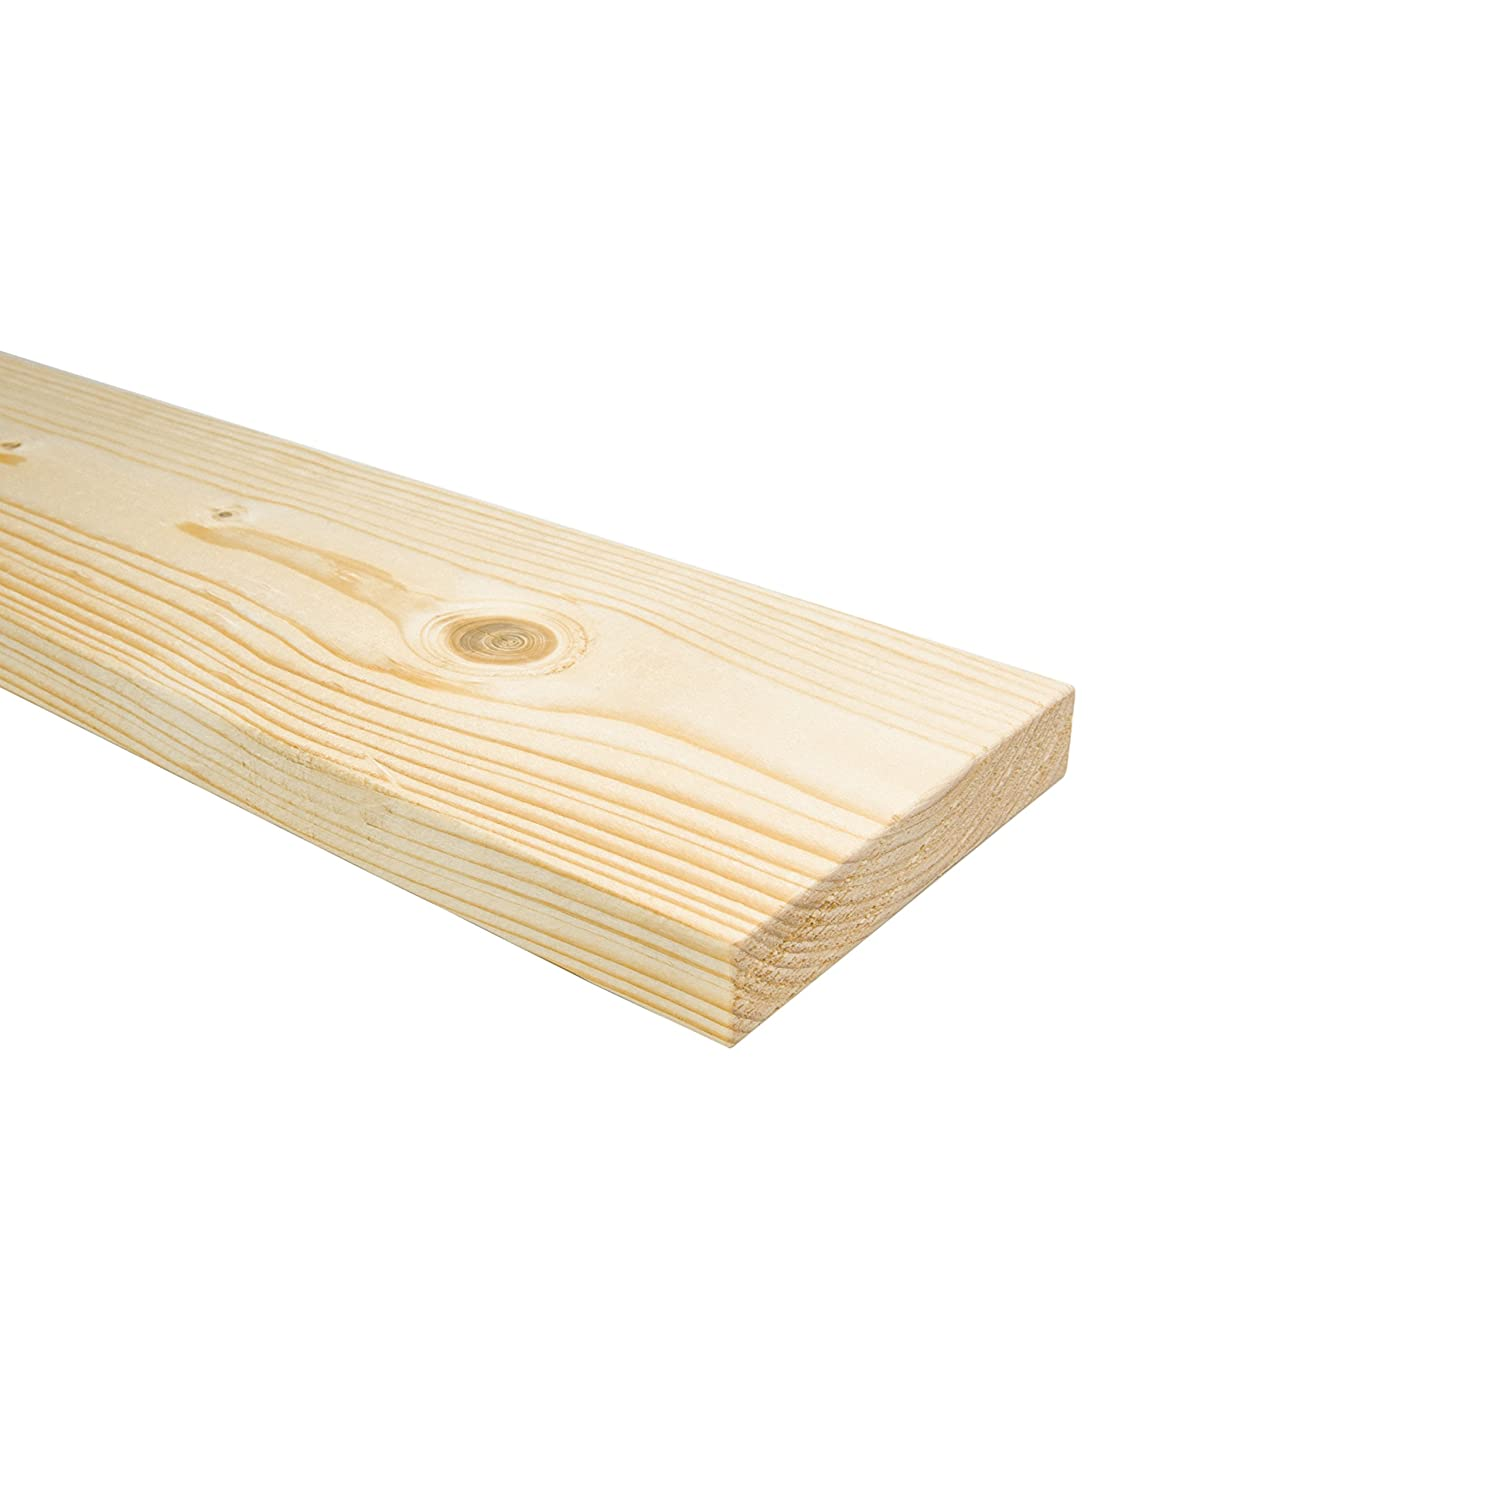 Double Individual Wooden Replacement Solid Pine Flat Bed Slats 4ft6-1365mm - 8 Slats The Bed Slats Company